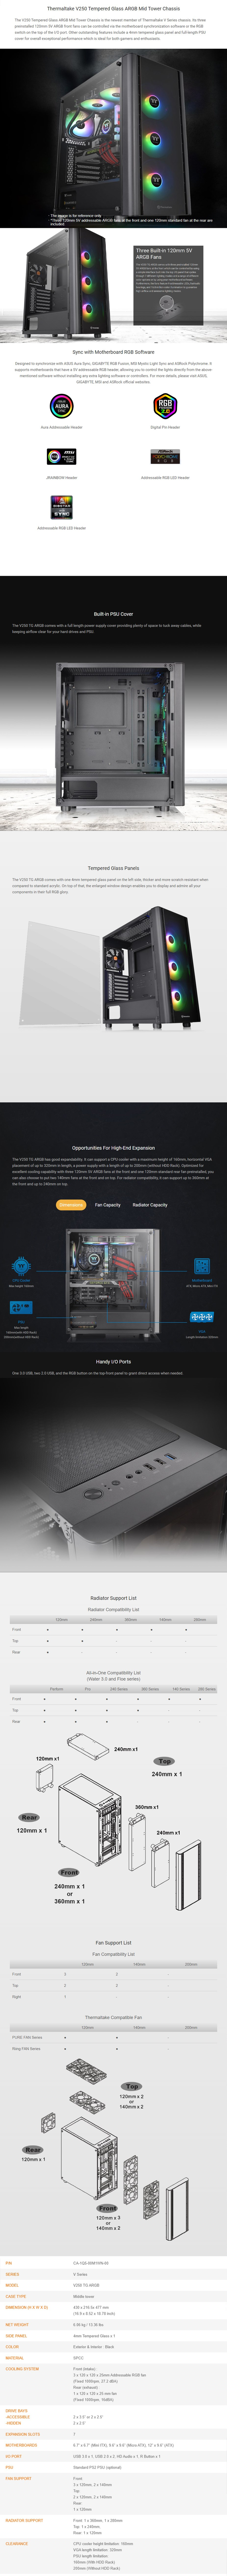 Thermaltake V250 TG ARGB Tempered Glass Mid-Tower ATX Case - Black - Overview 1